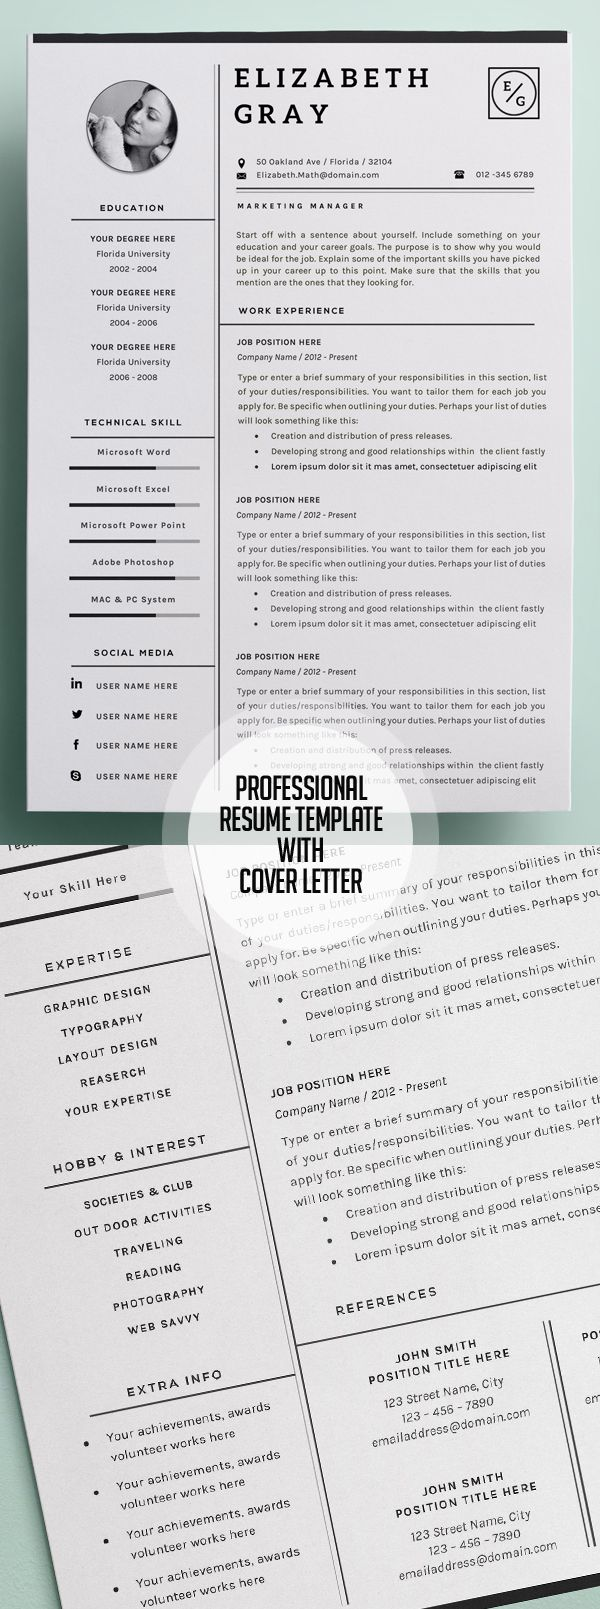 Opposenewapstandardsus  Nice  Resume Ideas On Pinterest  Resume Resume Templates And  With Handsome Professional And Modern Resume Template With Page Cover Cvtemplate With Astonishing Email For Resume Also Courier Resume In Addition Fill Out A Resume And Electrician Resume Examples As Well As How To Write A Resume Template Additionally Sample Resume For Retail From Pinterestcom With Opposenewapstandardsus  Handsome  Resume Ideas On Pinterest  Resume Resume Templates And  With Astonishing Professional And Modern Resume Template With Page Cover Cvtemplate And Nice Email For Resume Also Courier Resume In Addition Fill Out A Resume From Pinterestcom